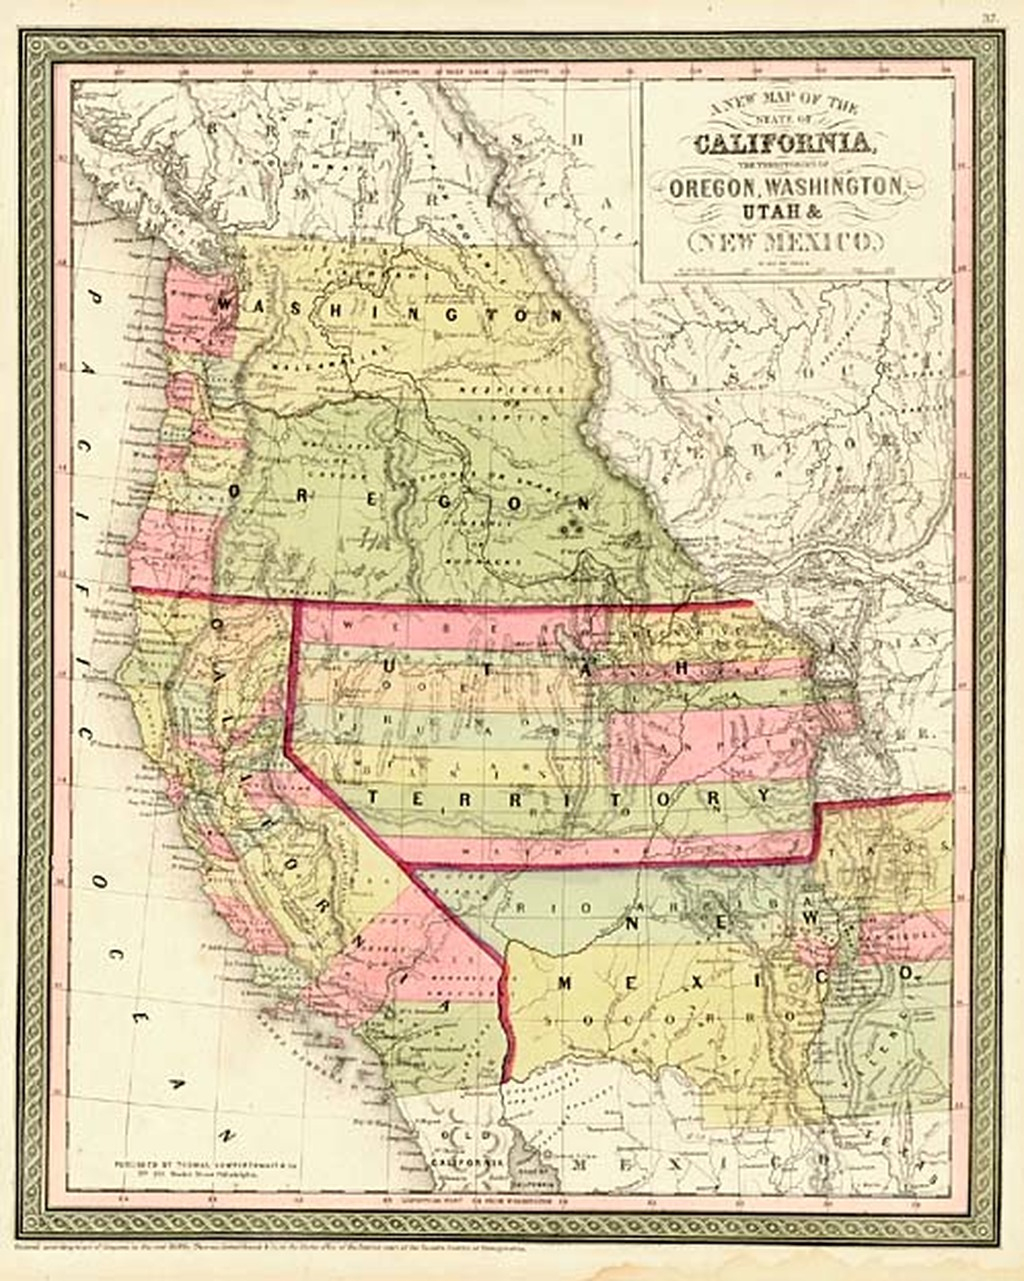 A New Map Of The State Of California, The Territories Of Oregon - California Oregon Border Map